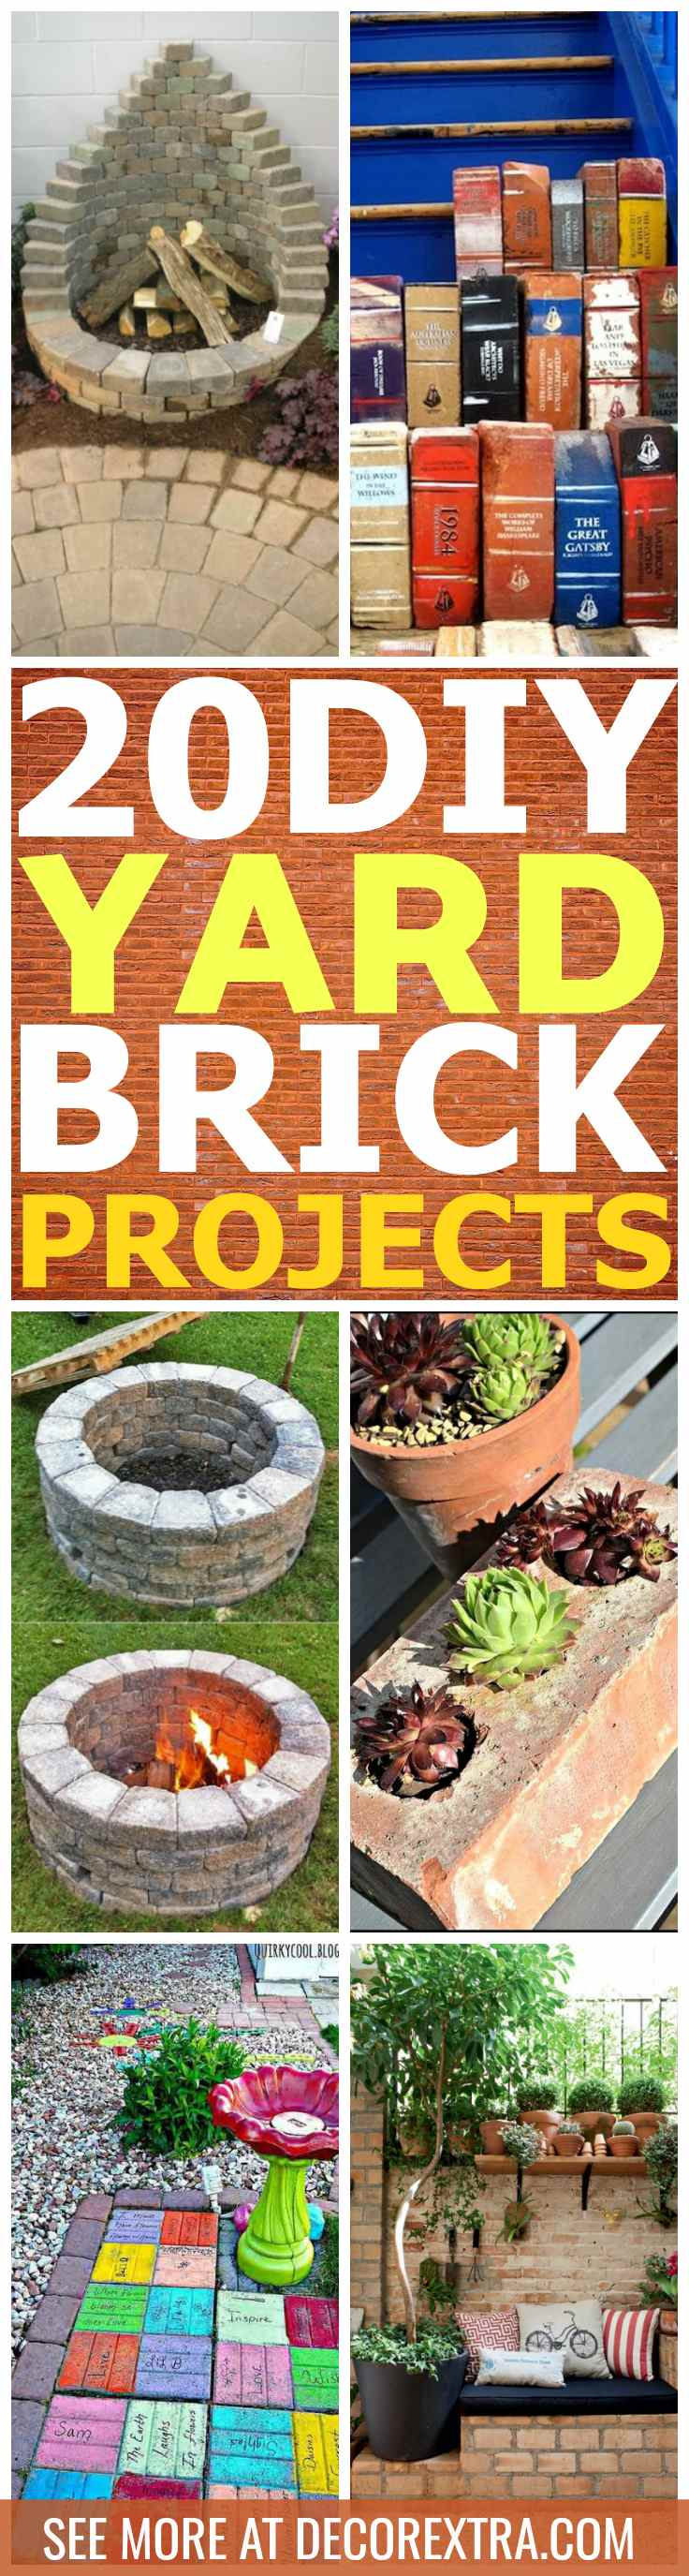 DIY Yard Brick Projects